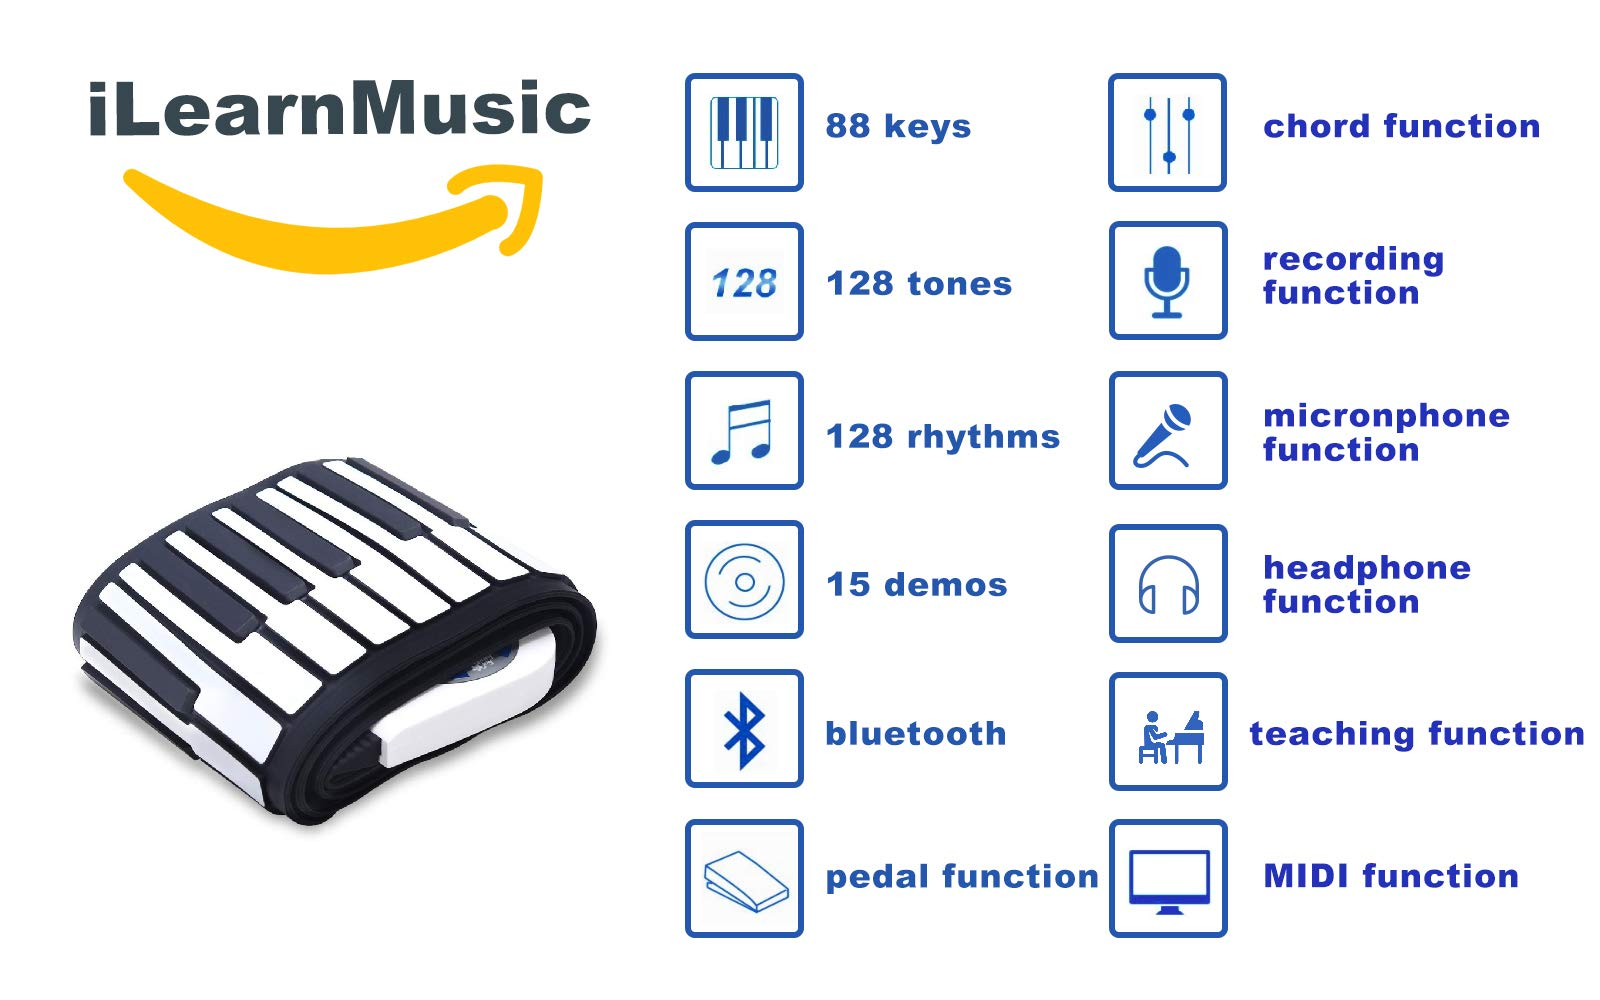 iLearnMusic Roll Up Piano, Premium Grade Silicone, Built-in Speakers - Educational Piano (61 Keys (F61)) by iLearnMusic (Image #4)